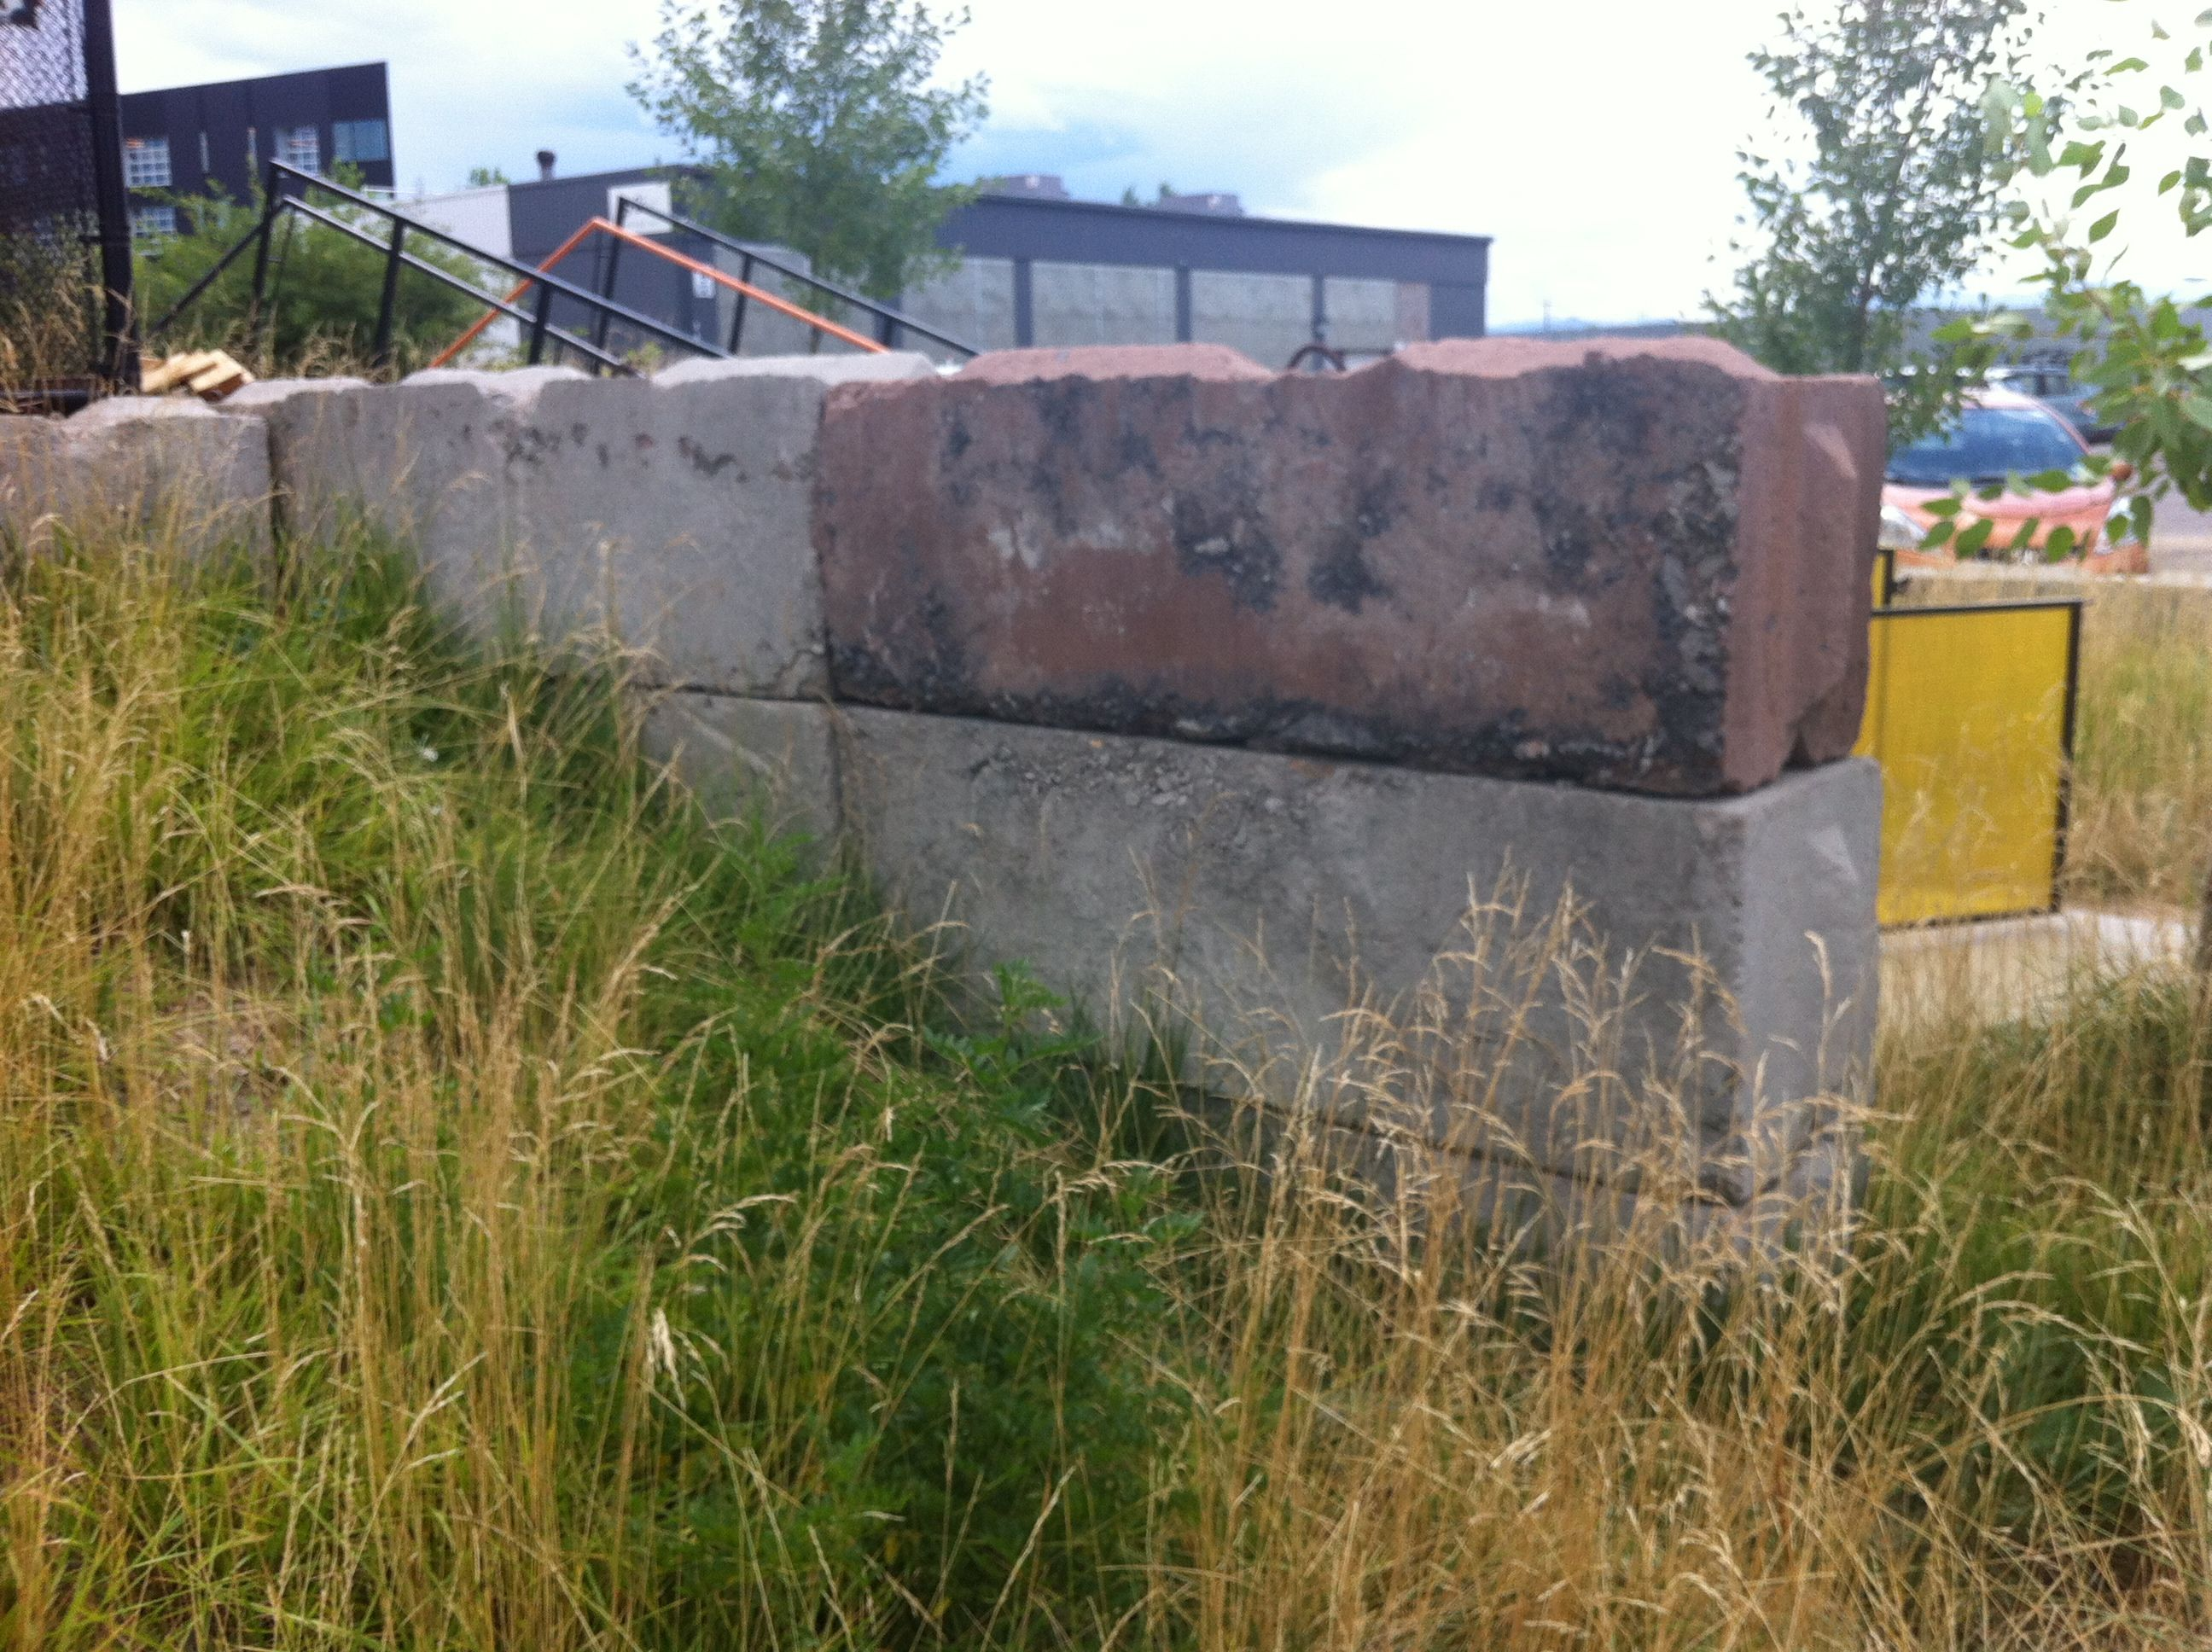 Pre Cast Interlocking Like Legos Concrete Jersey Barrier Retaining Wall At Taxi Development In Denver S Rino In 2020 Jersey Barrier Retaining Wall Concrete